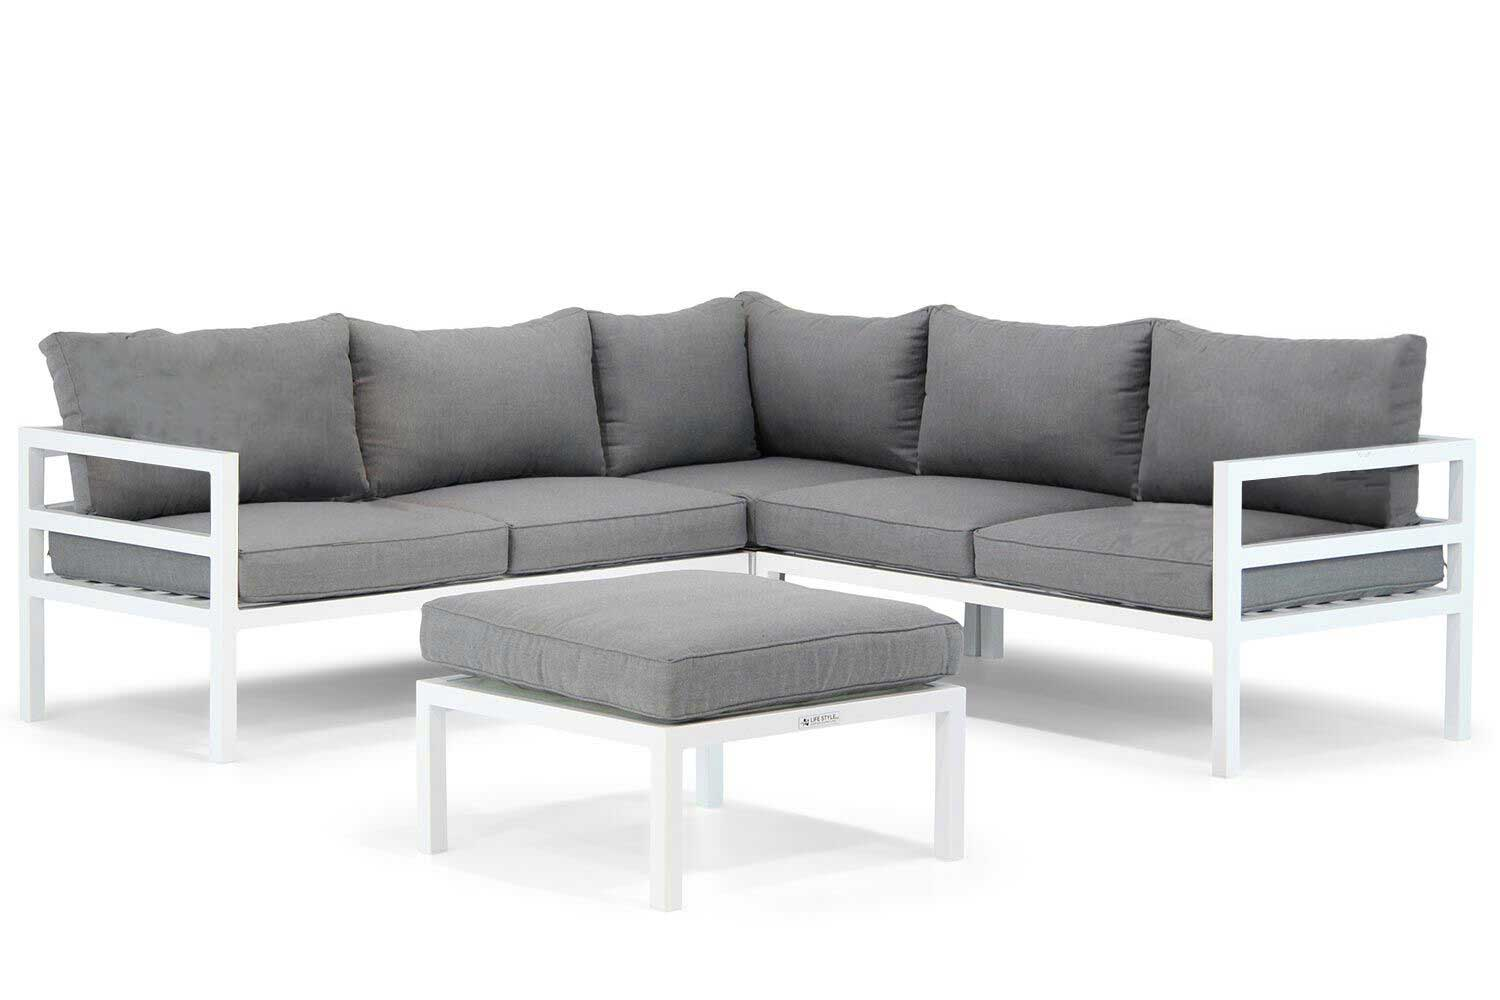 Lifestyle Arenas hoek loungesets 4-delig